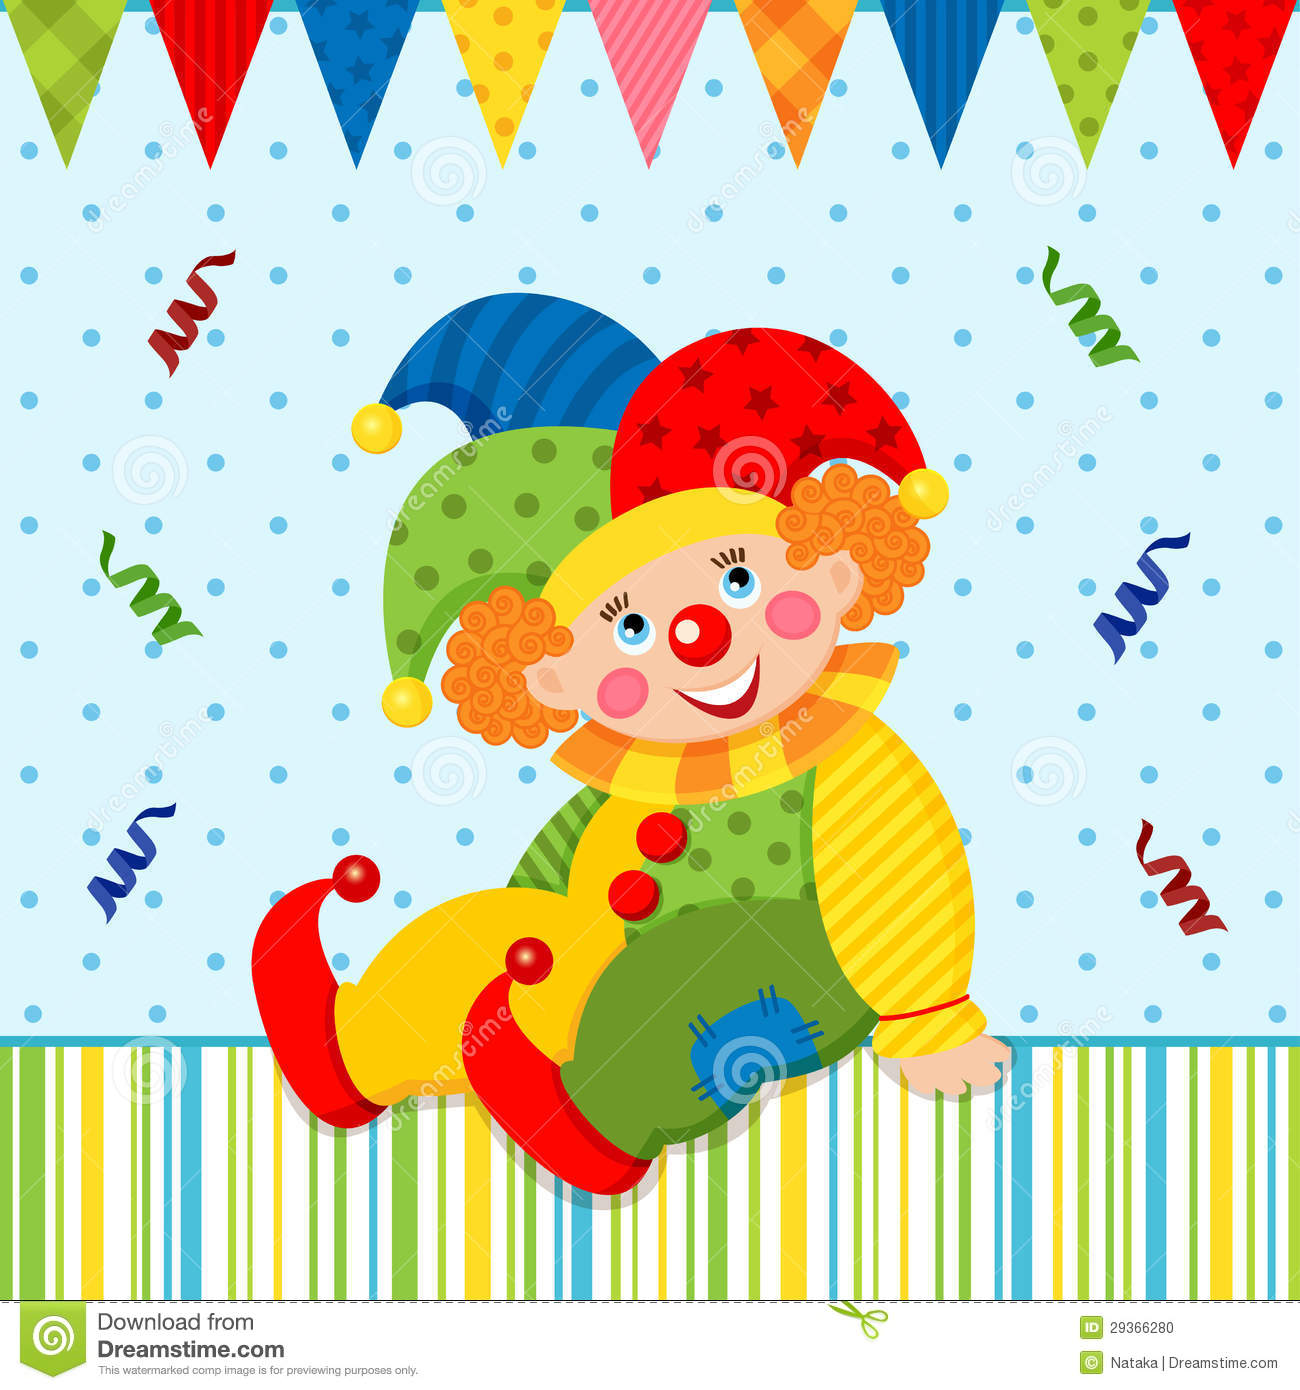 Clown Joker Vector Stock Photo - Image: 29366280